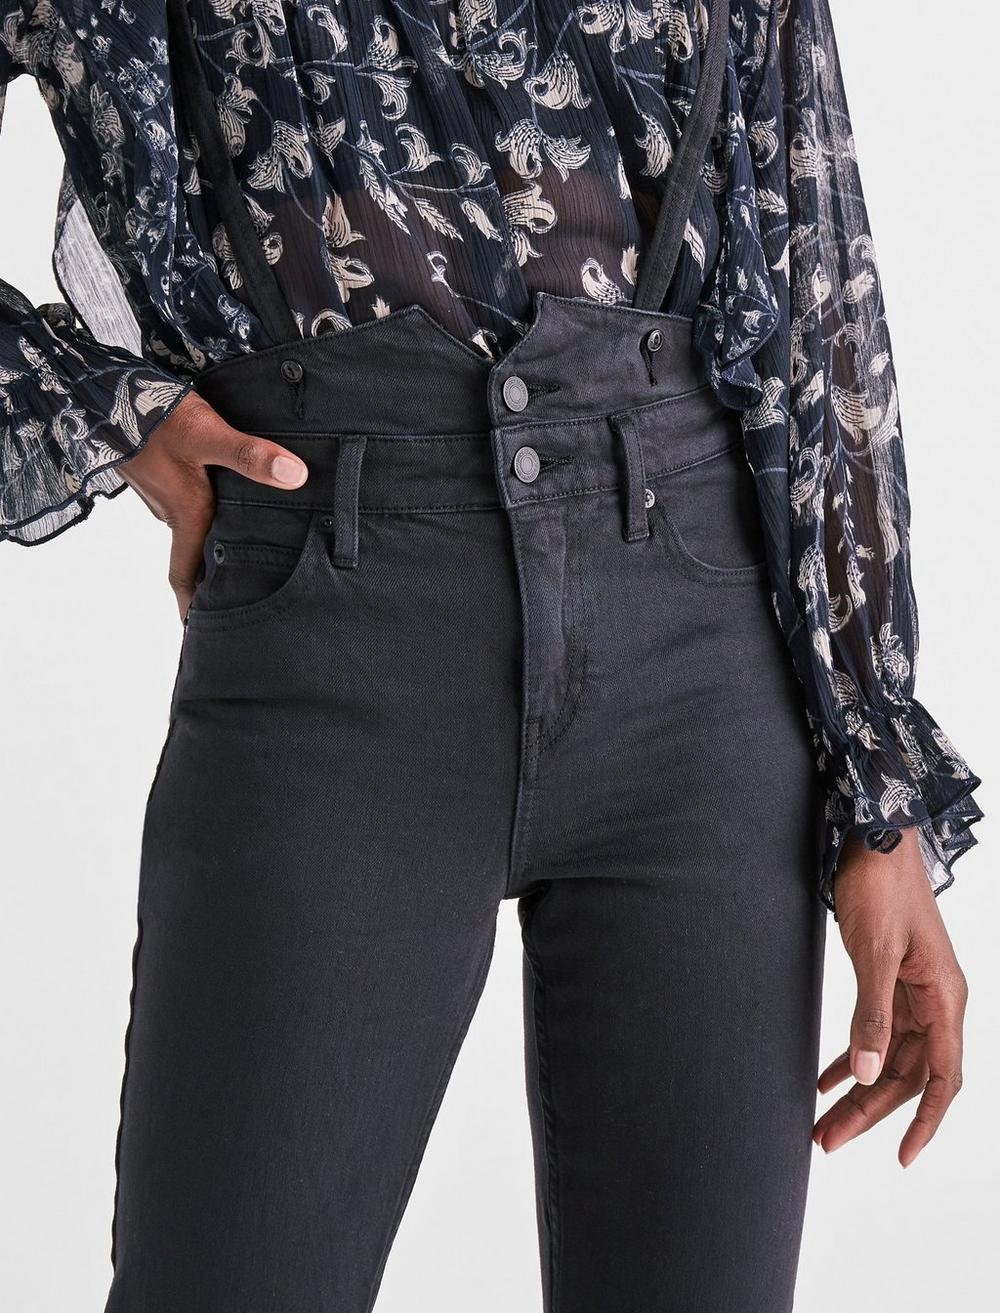 BRIDGETTE HIGH RISE SKINNY JEANS WITH SUSPENDERS, image 4